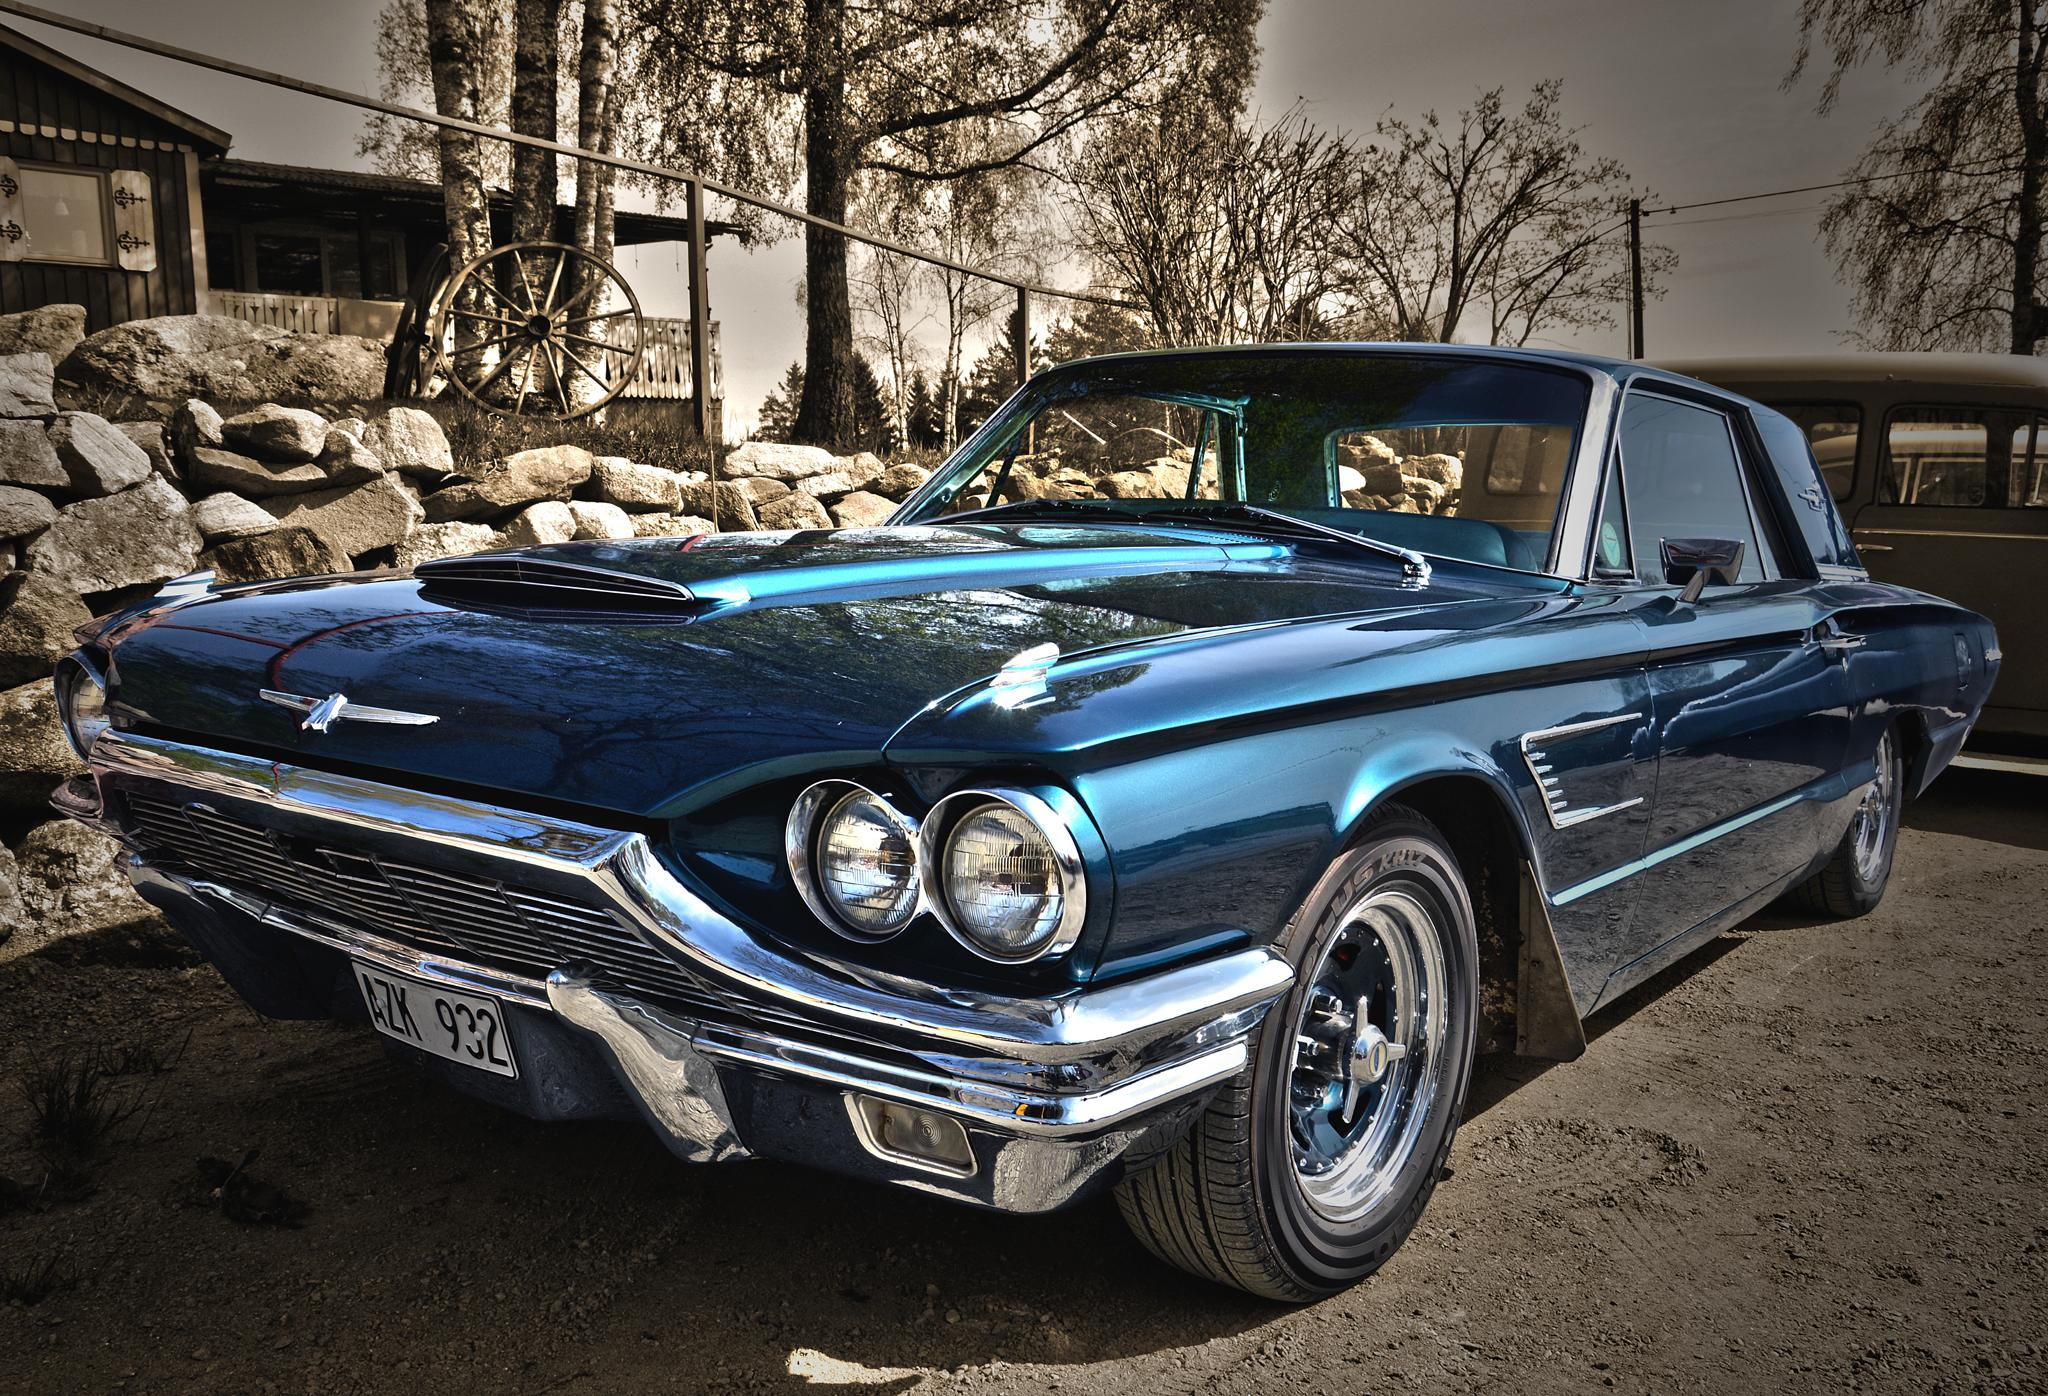 1965 Ford Thunderbird by Linda Persson